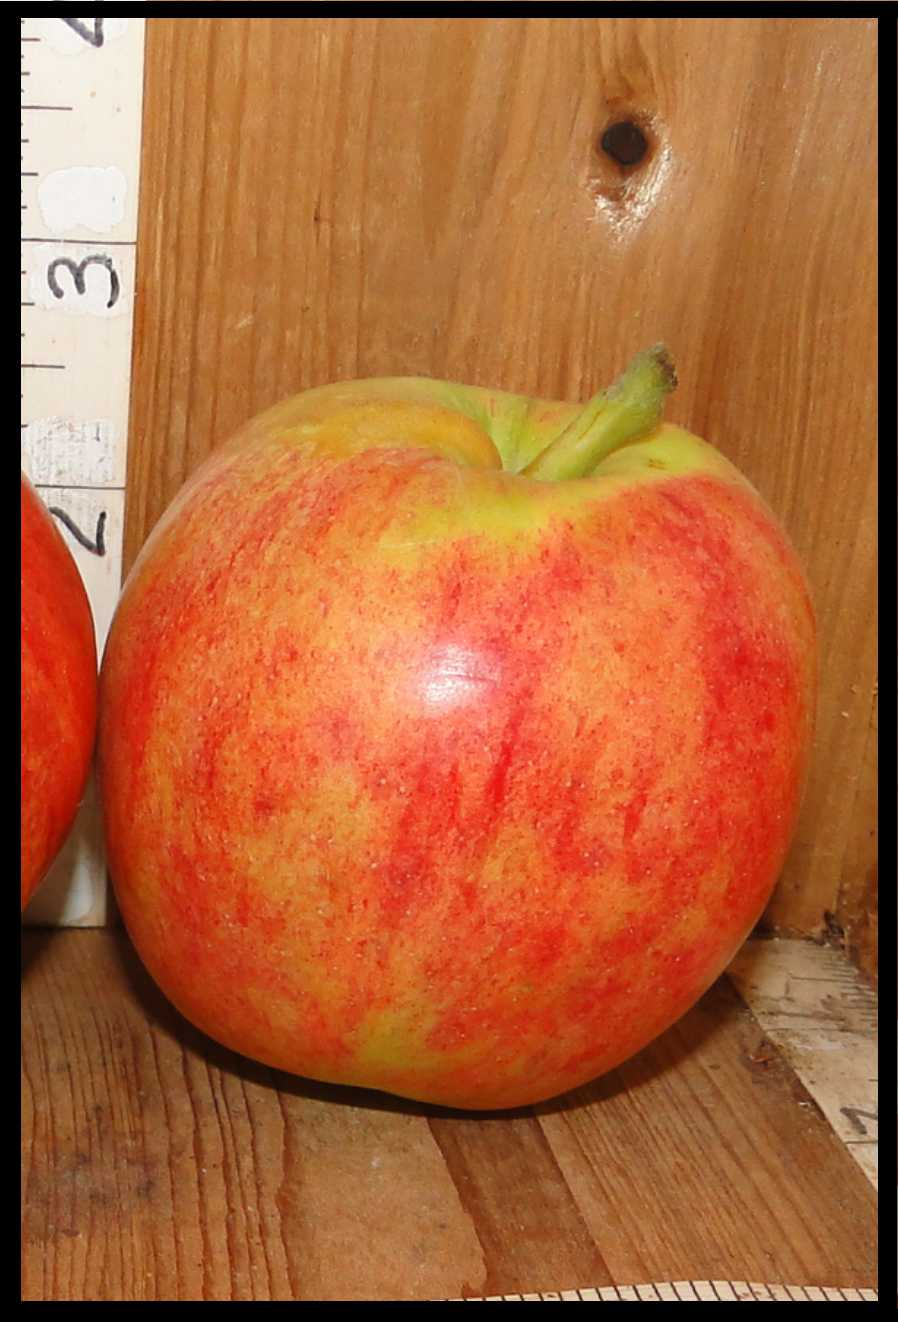 yellow apple largely covered with red blush